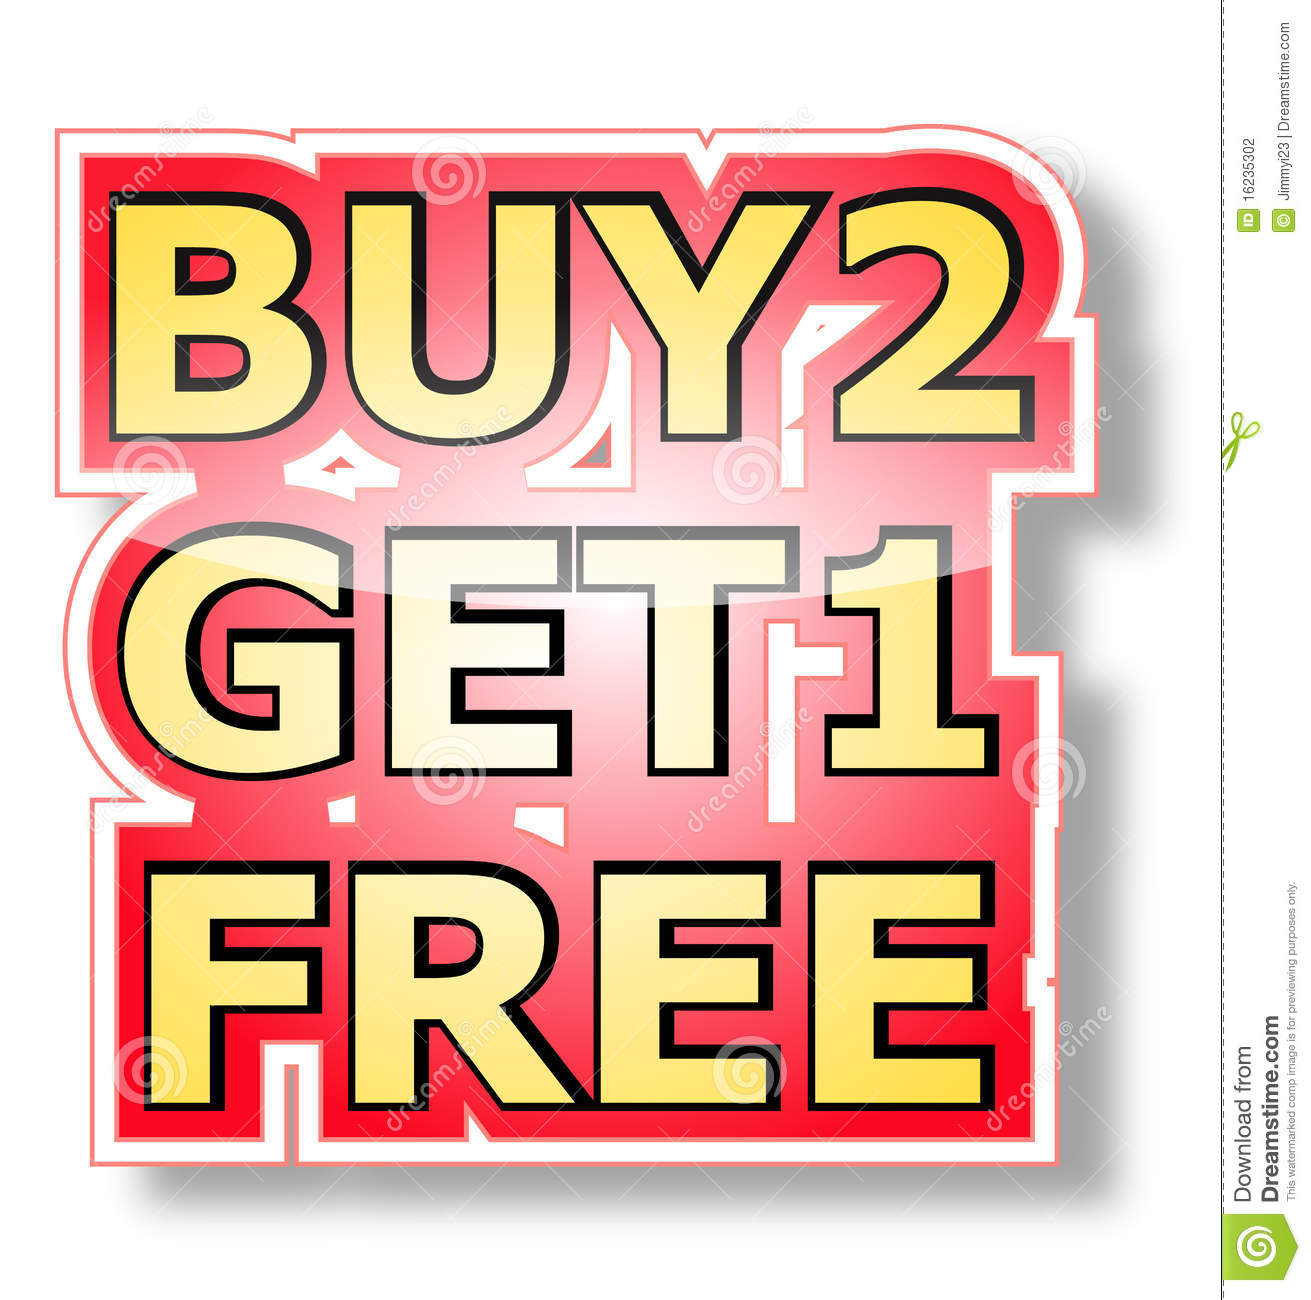 Buy: Buy 2 Get 1 Free Stock Vector. Illustration Of Free, Point